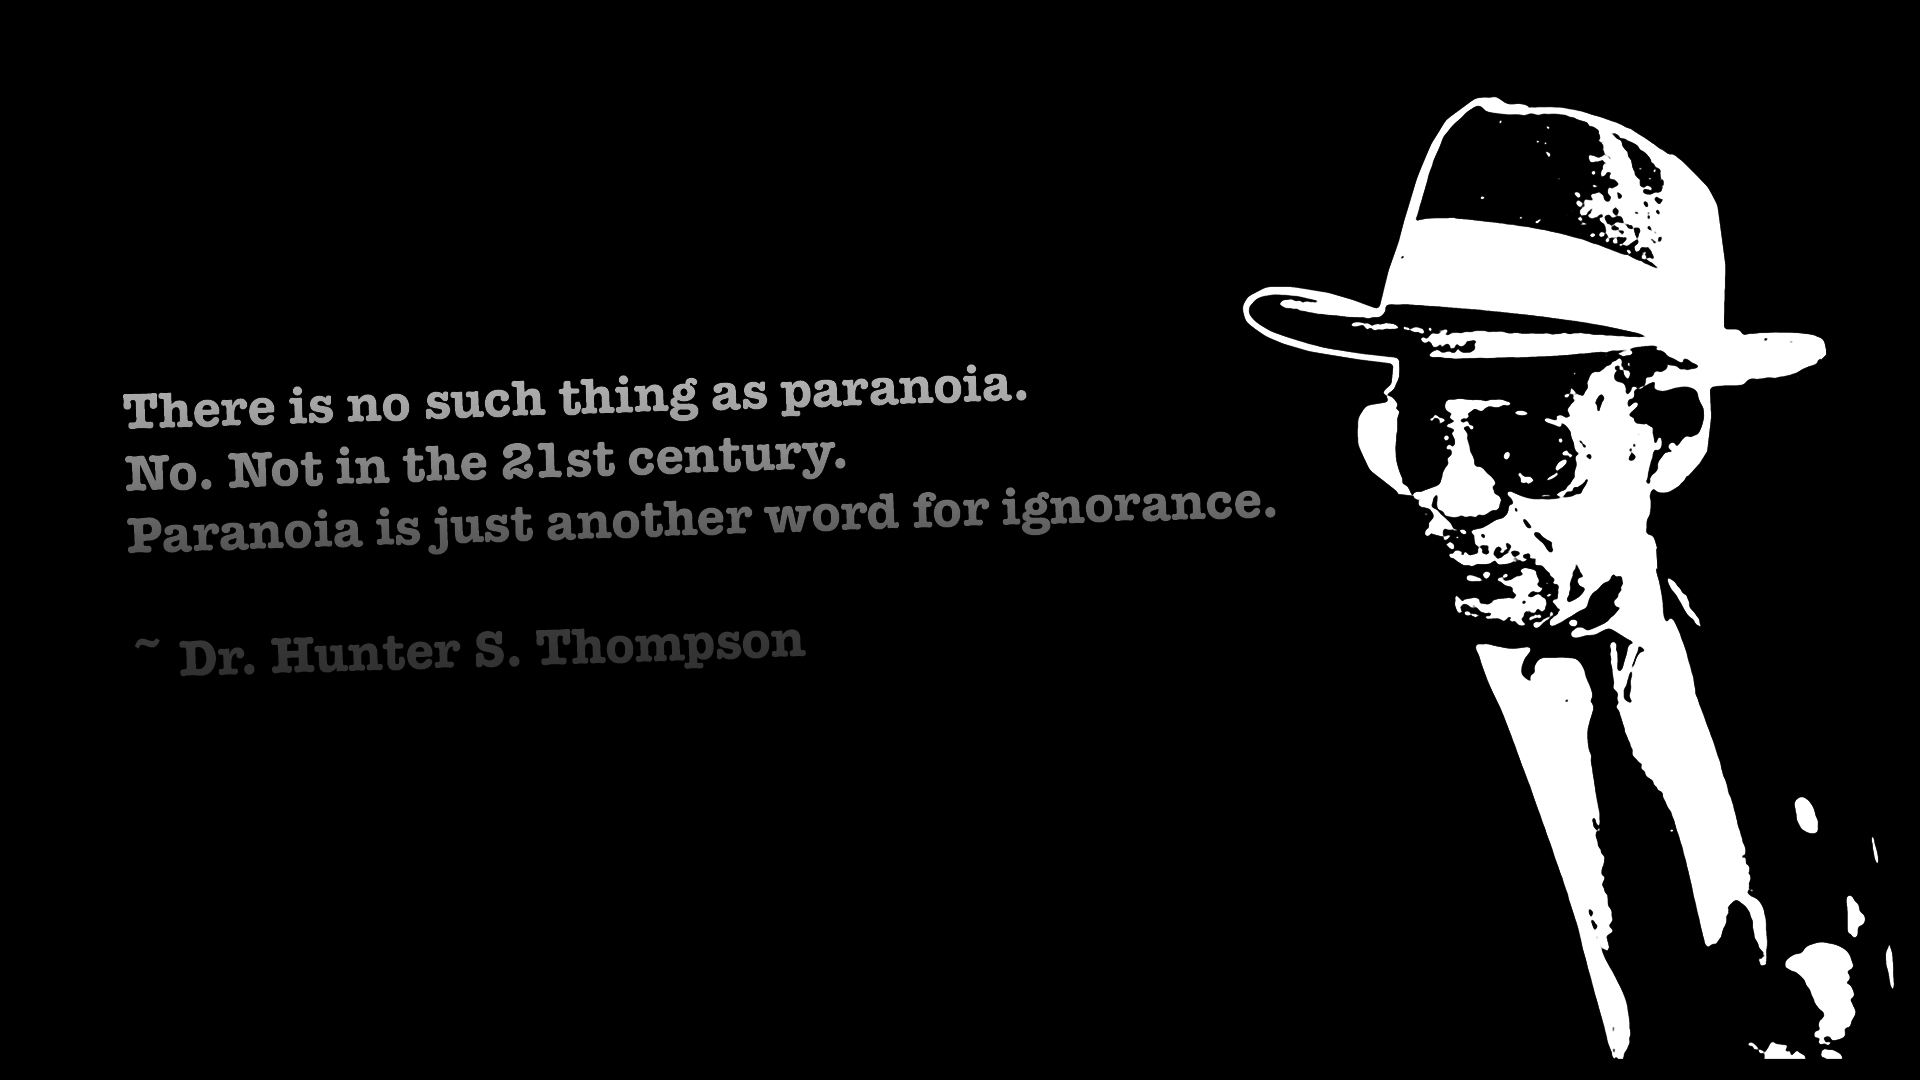 66+] Hunter S Thompson Wallpaper on WallpaperSafari